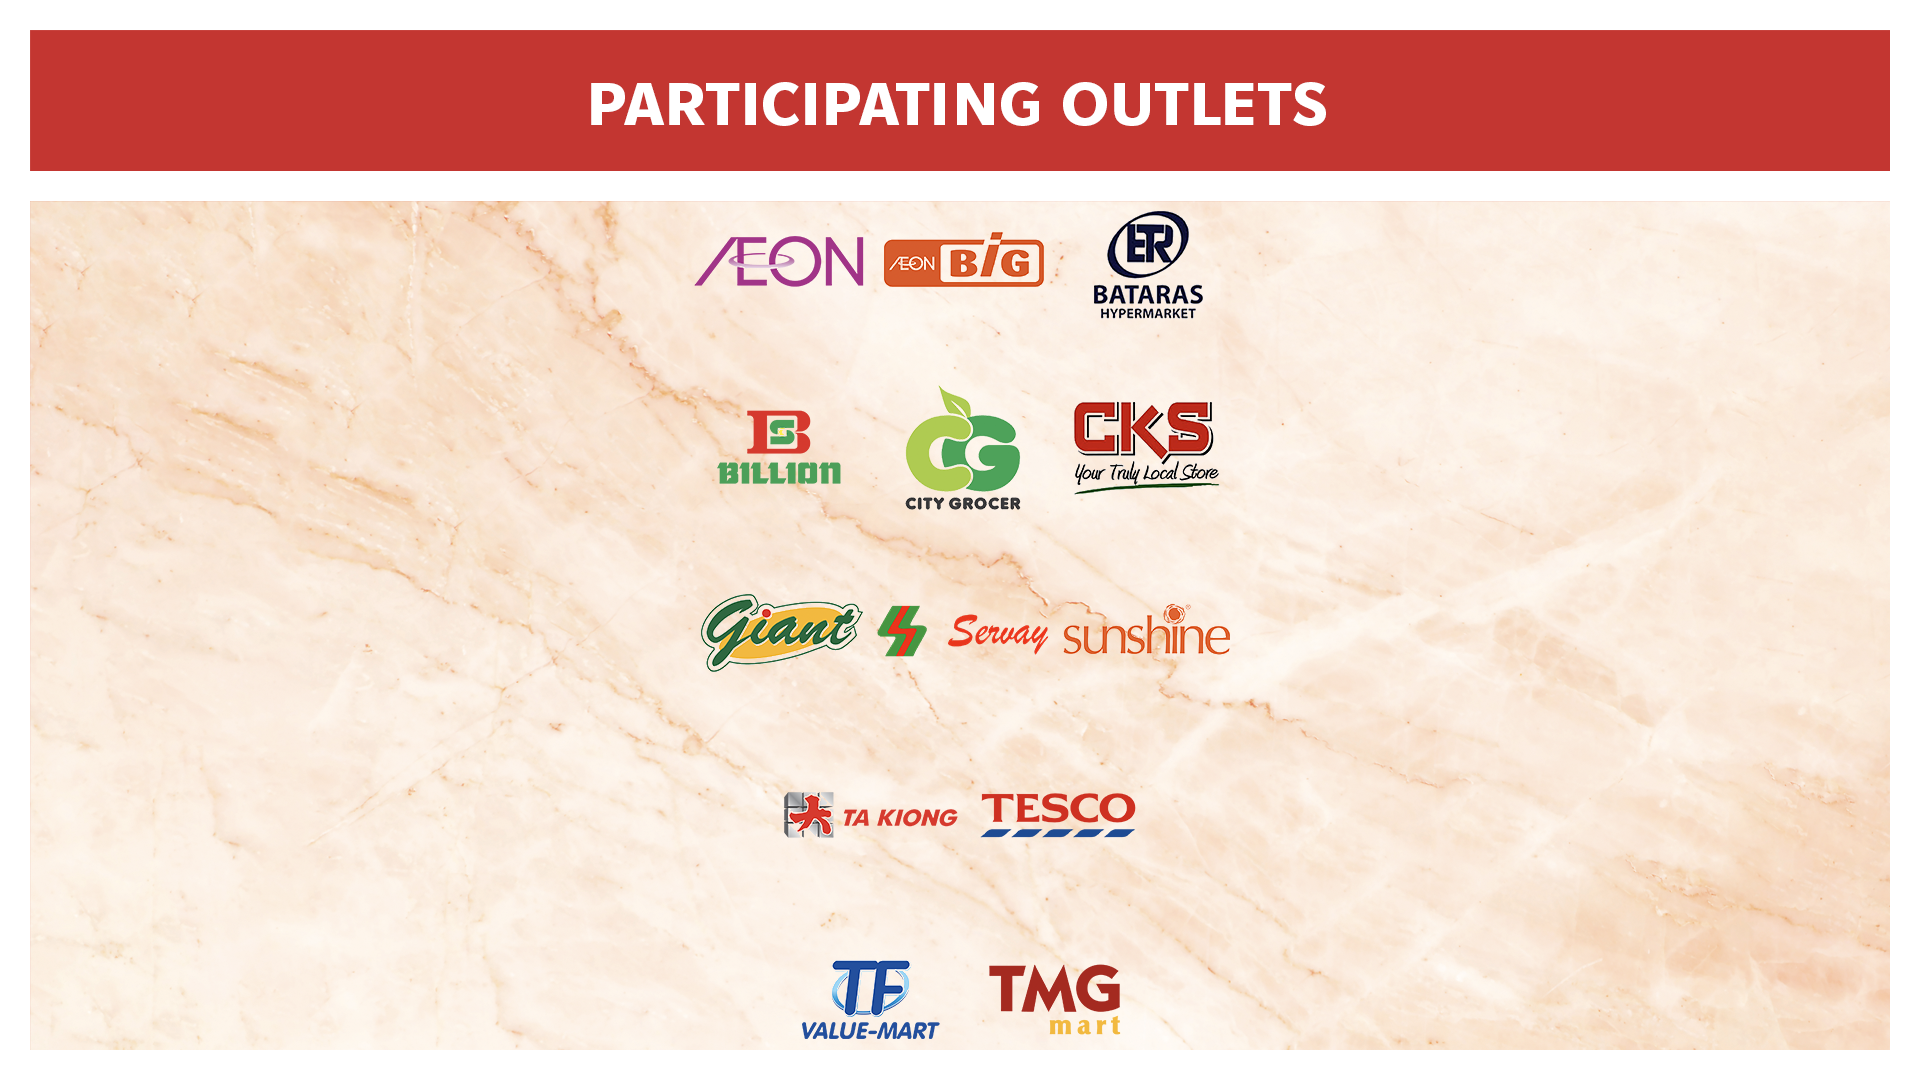 Participating Outlets